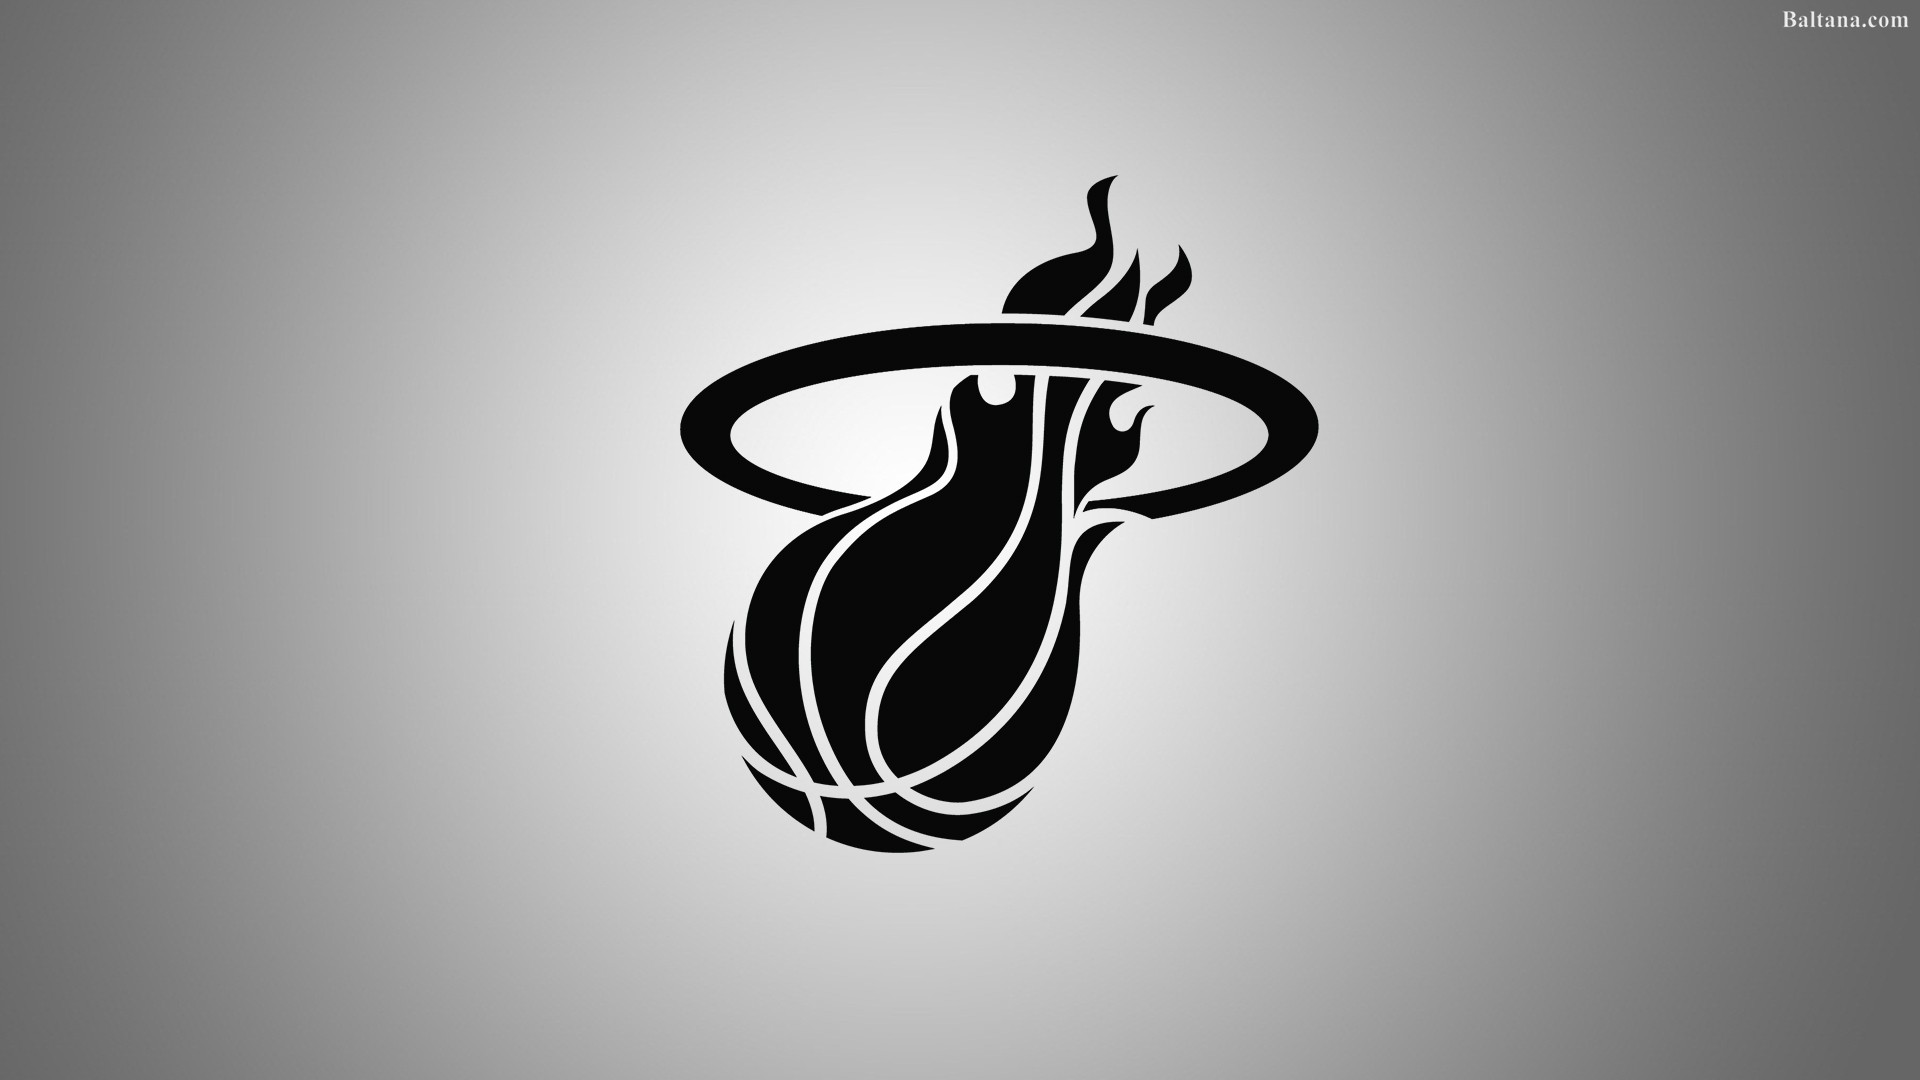 Miami Heat HD Wallpapers 33539   Baltana 1920x1080